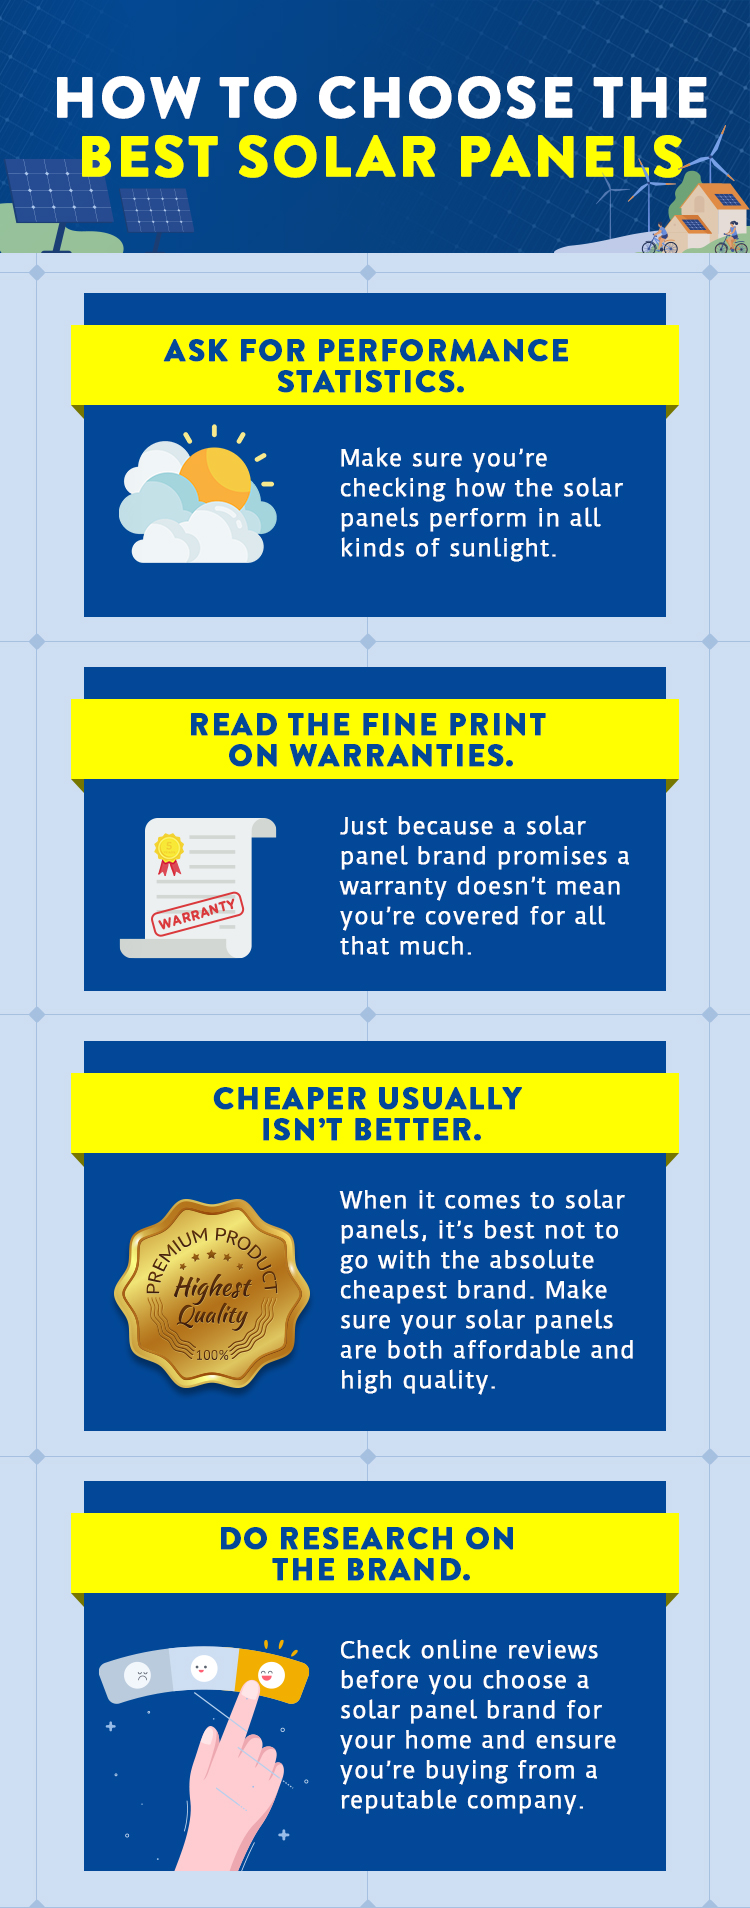 How To Choose The Best Solar Panels